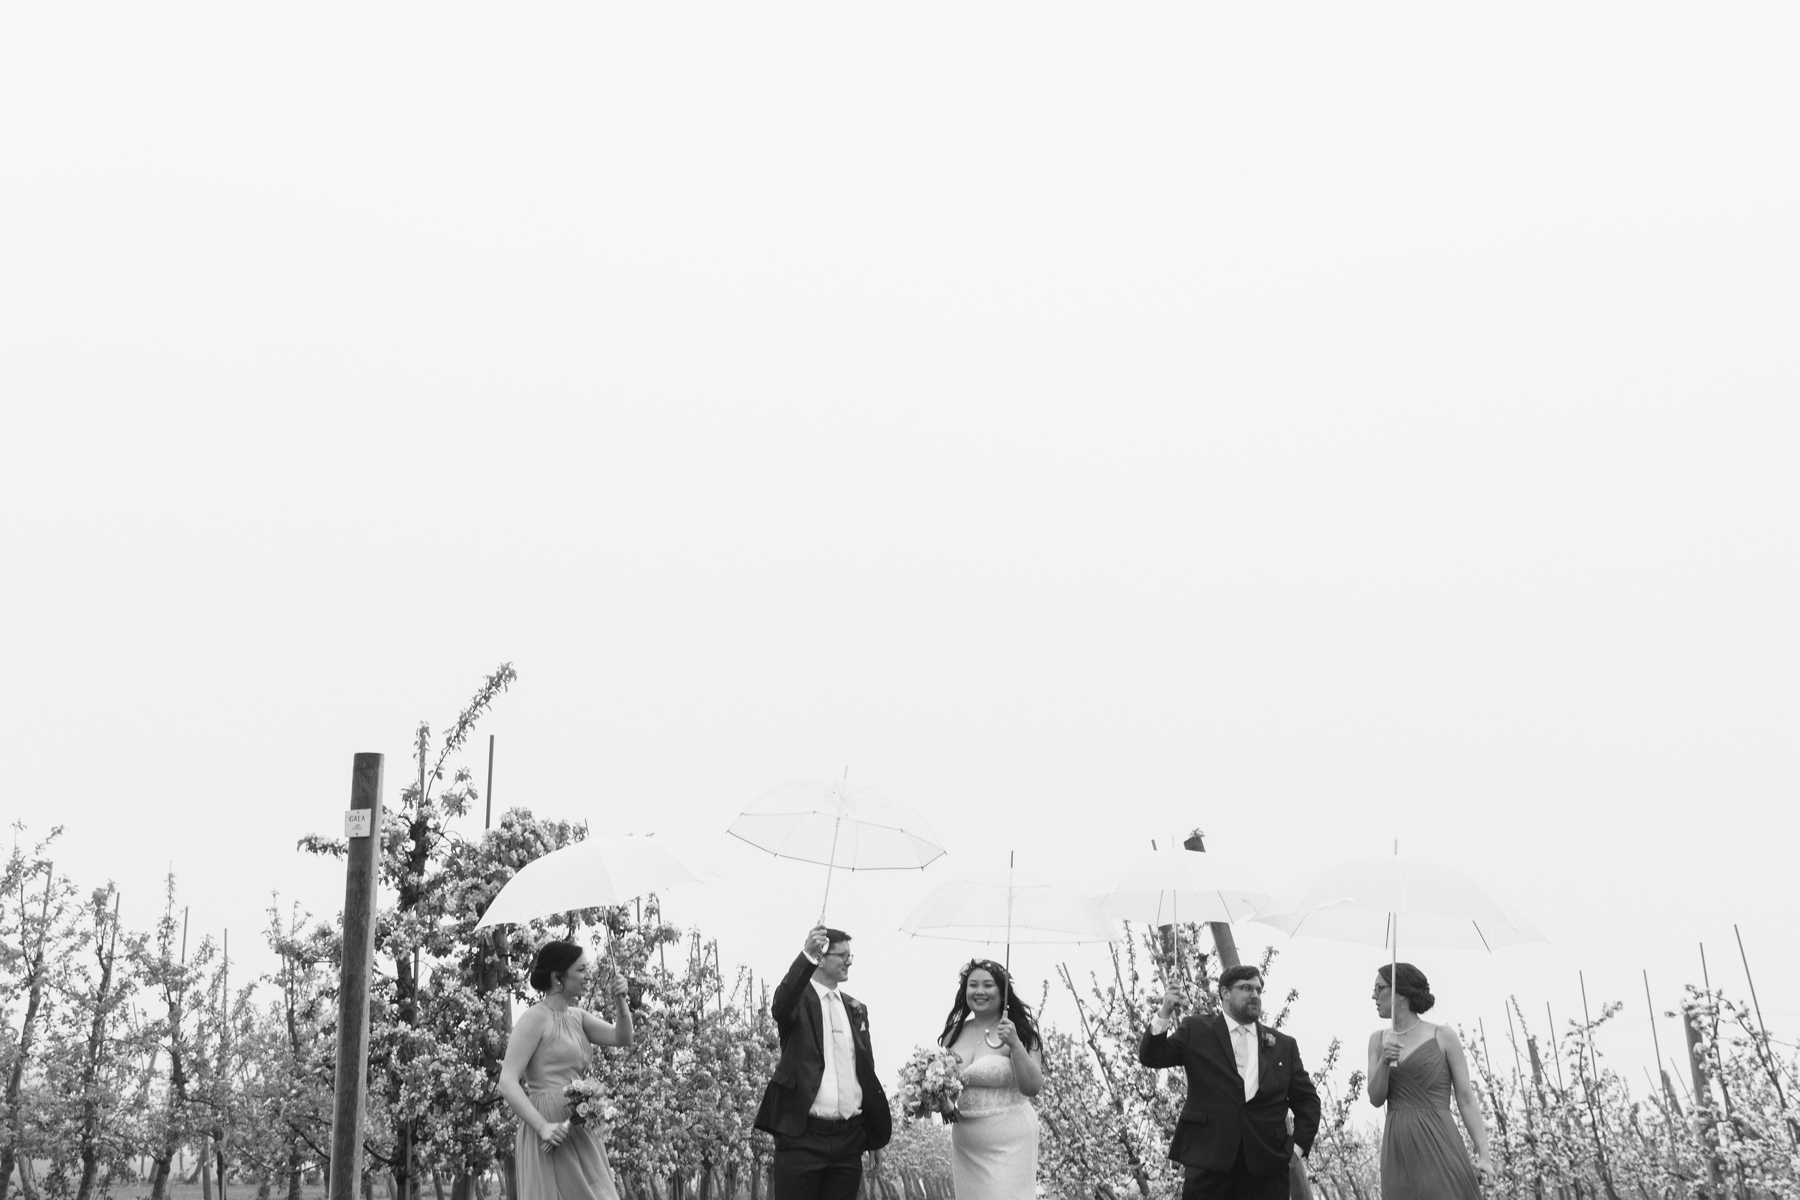 bridal party in orchard in rain